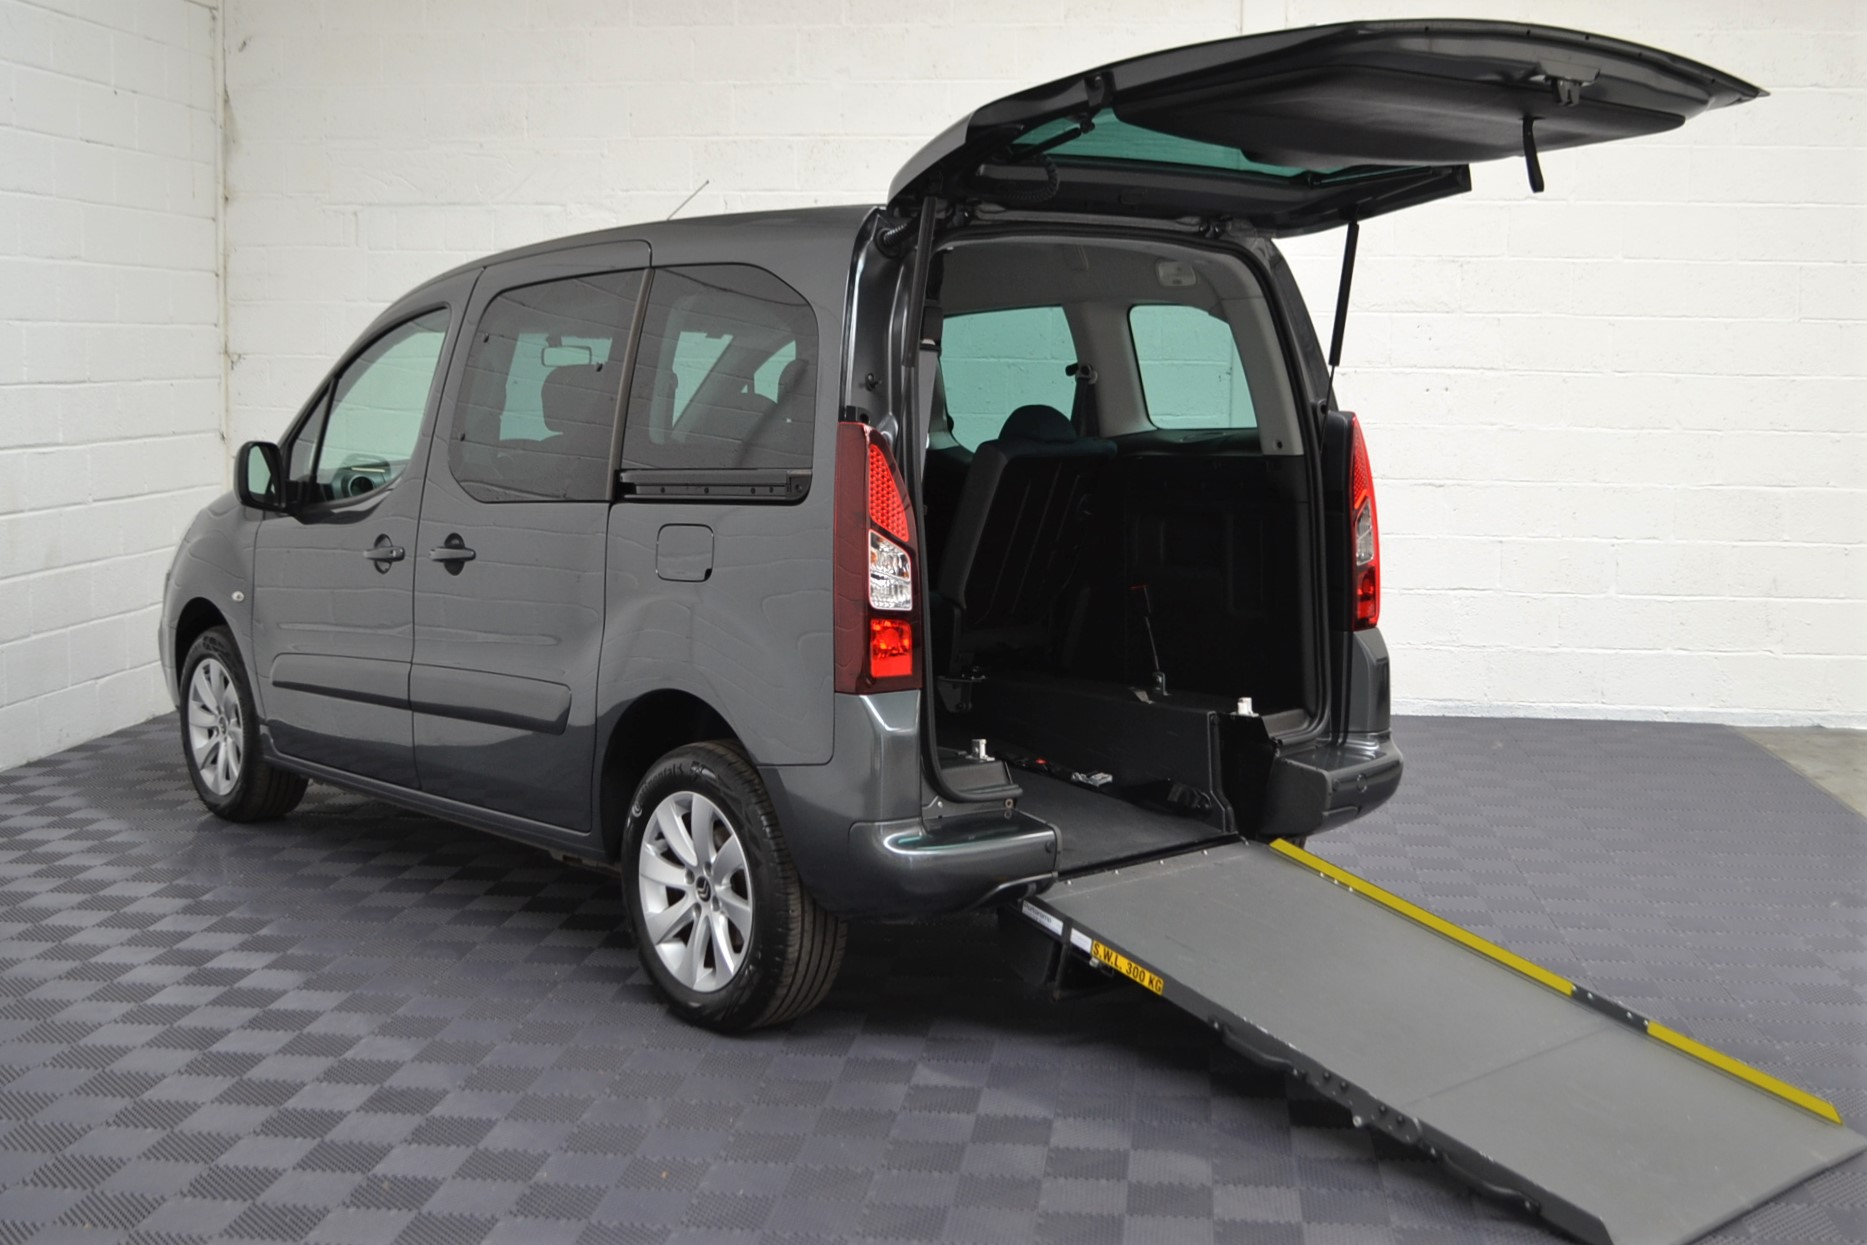 Disabled Cars For Sale Bristol Wheelchair Accessible Vehicles Used For Sale Somerset Devon Dorset Bath Peugeot Partner WA68 EVU 14